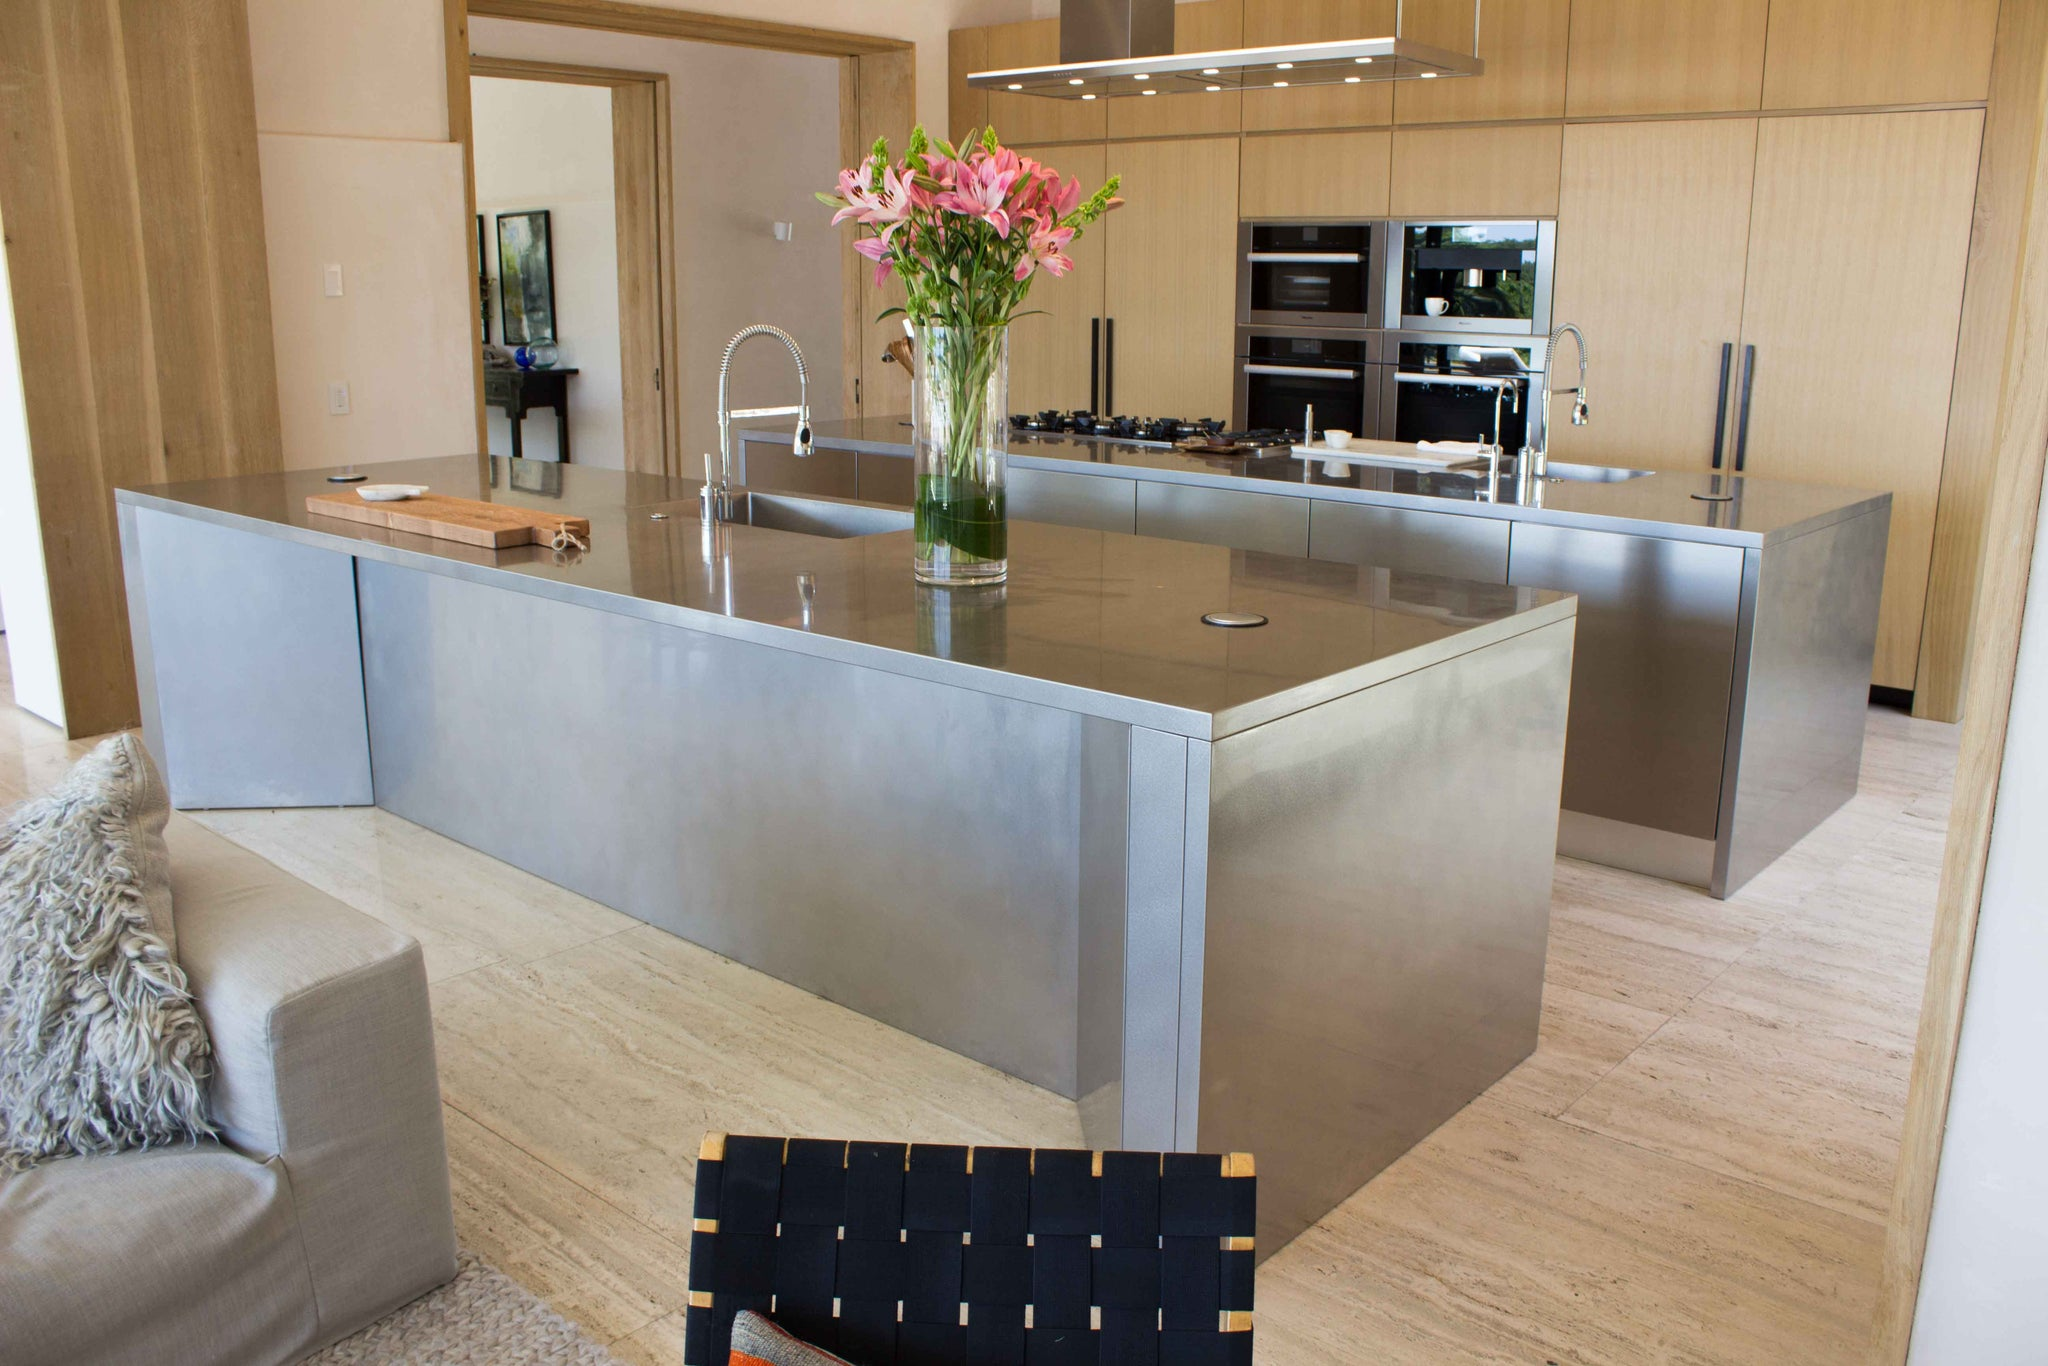 High Quality All Island Doors Have Electric Opening And Are U201chandle Free,u201d For Your  Convenience. Here, We Have Added Some Features Such As A Welded Sink And  Hidden ...